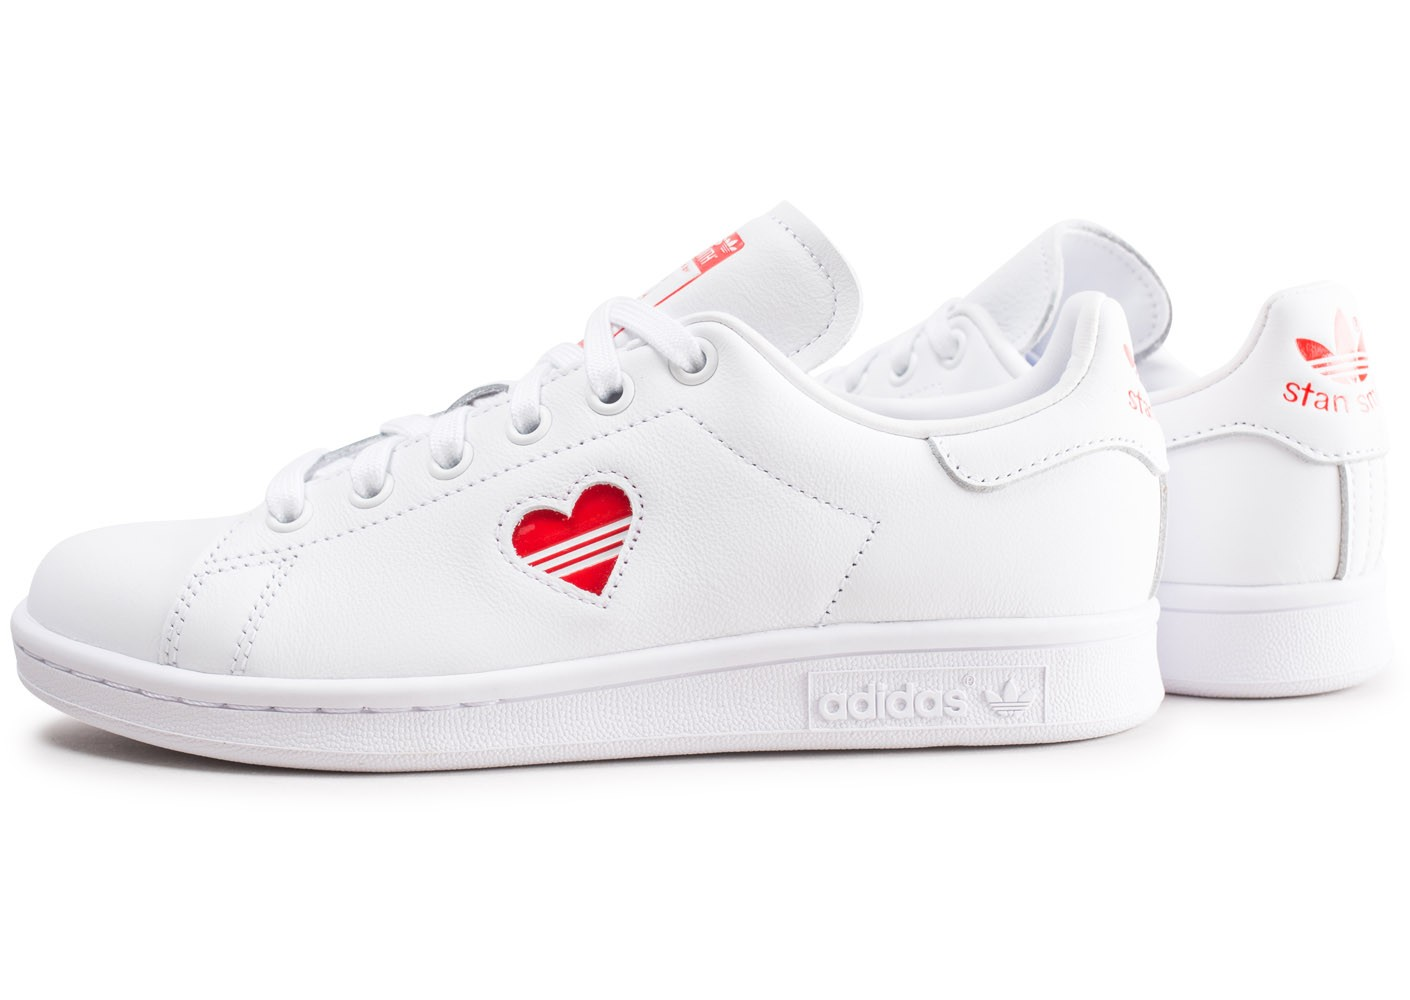 adidas Stan Smith blanche et rouge femme - Chaussures adidas ...